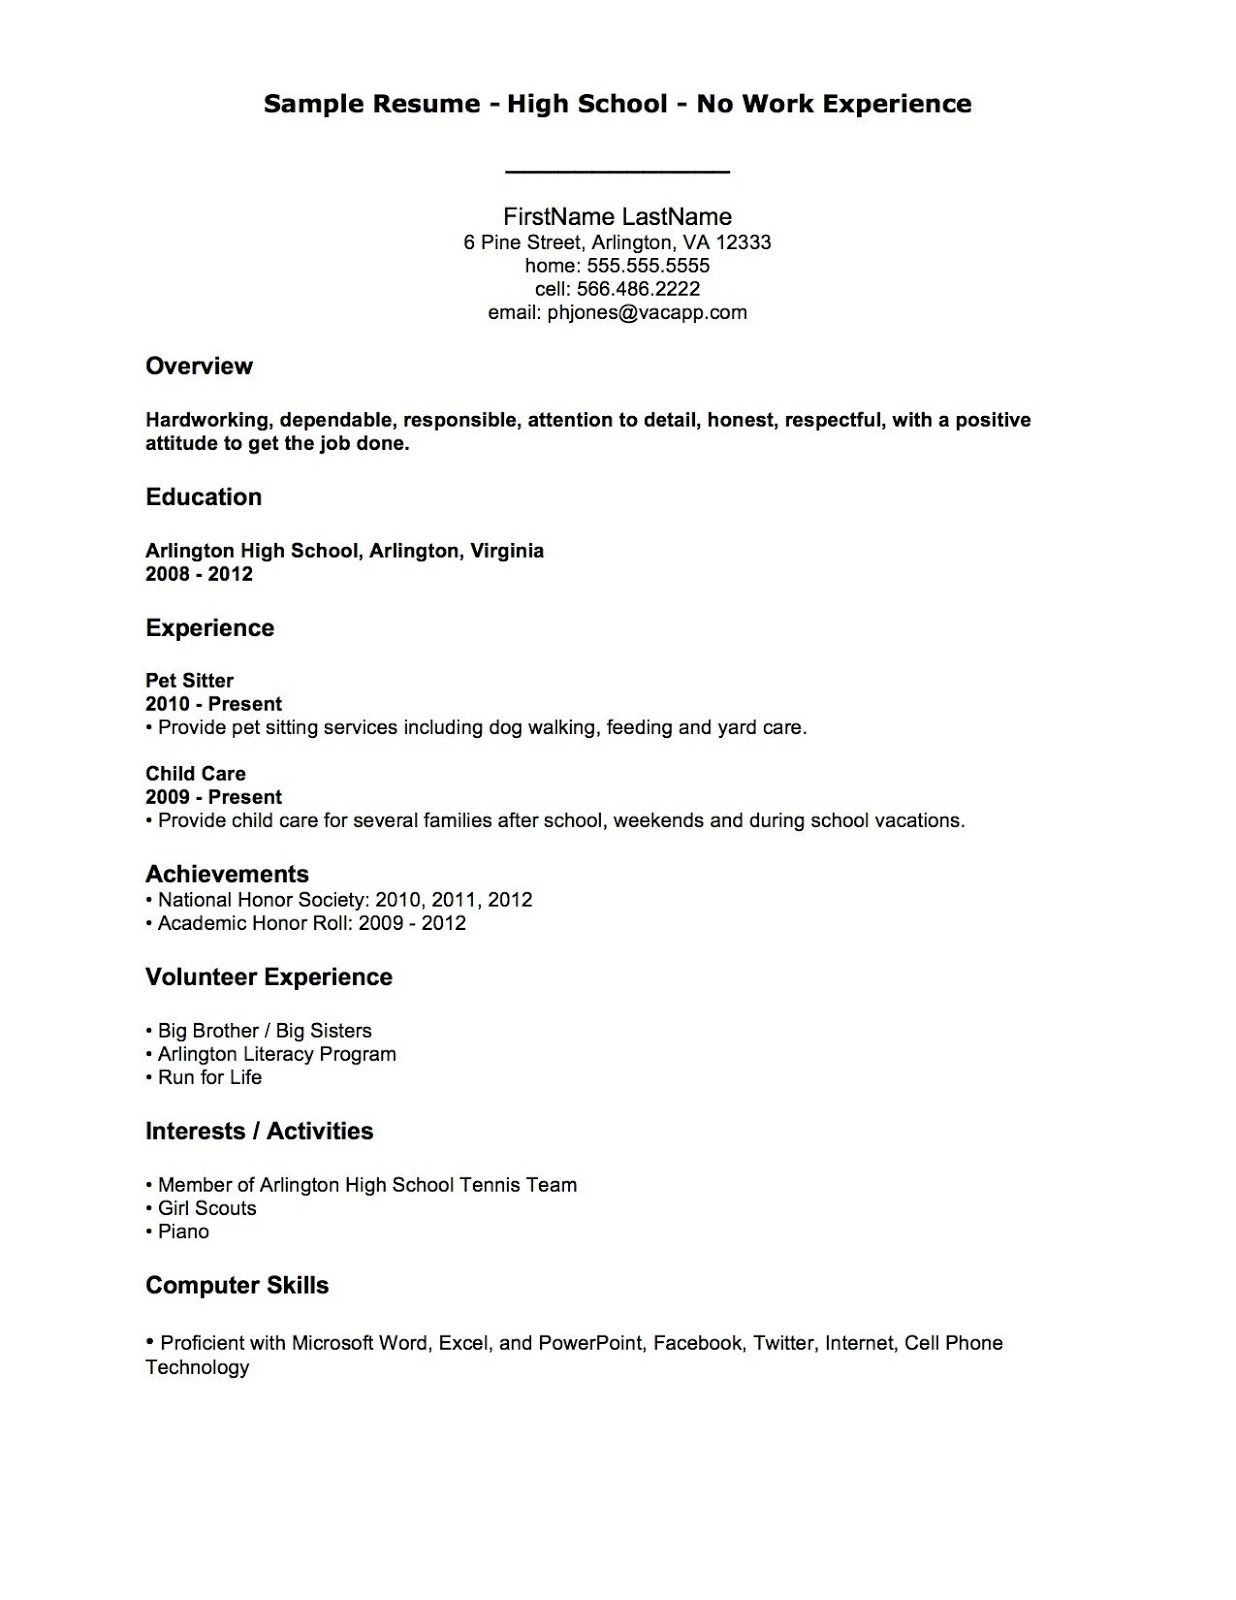 Sample Job Resumes